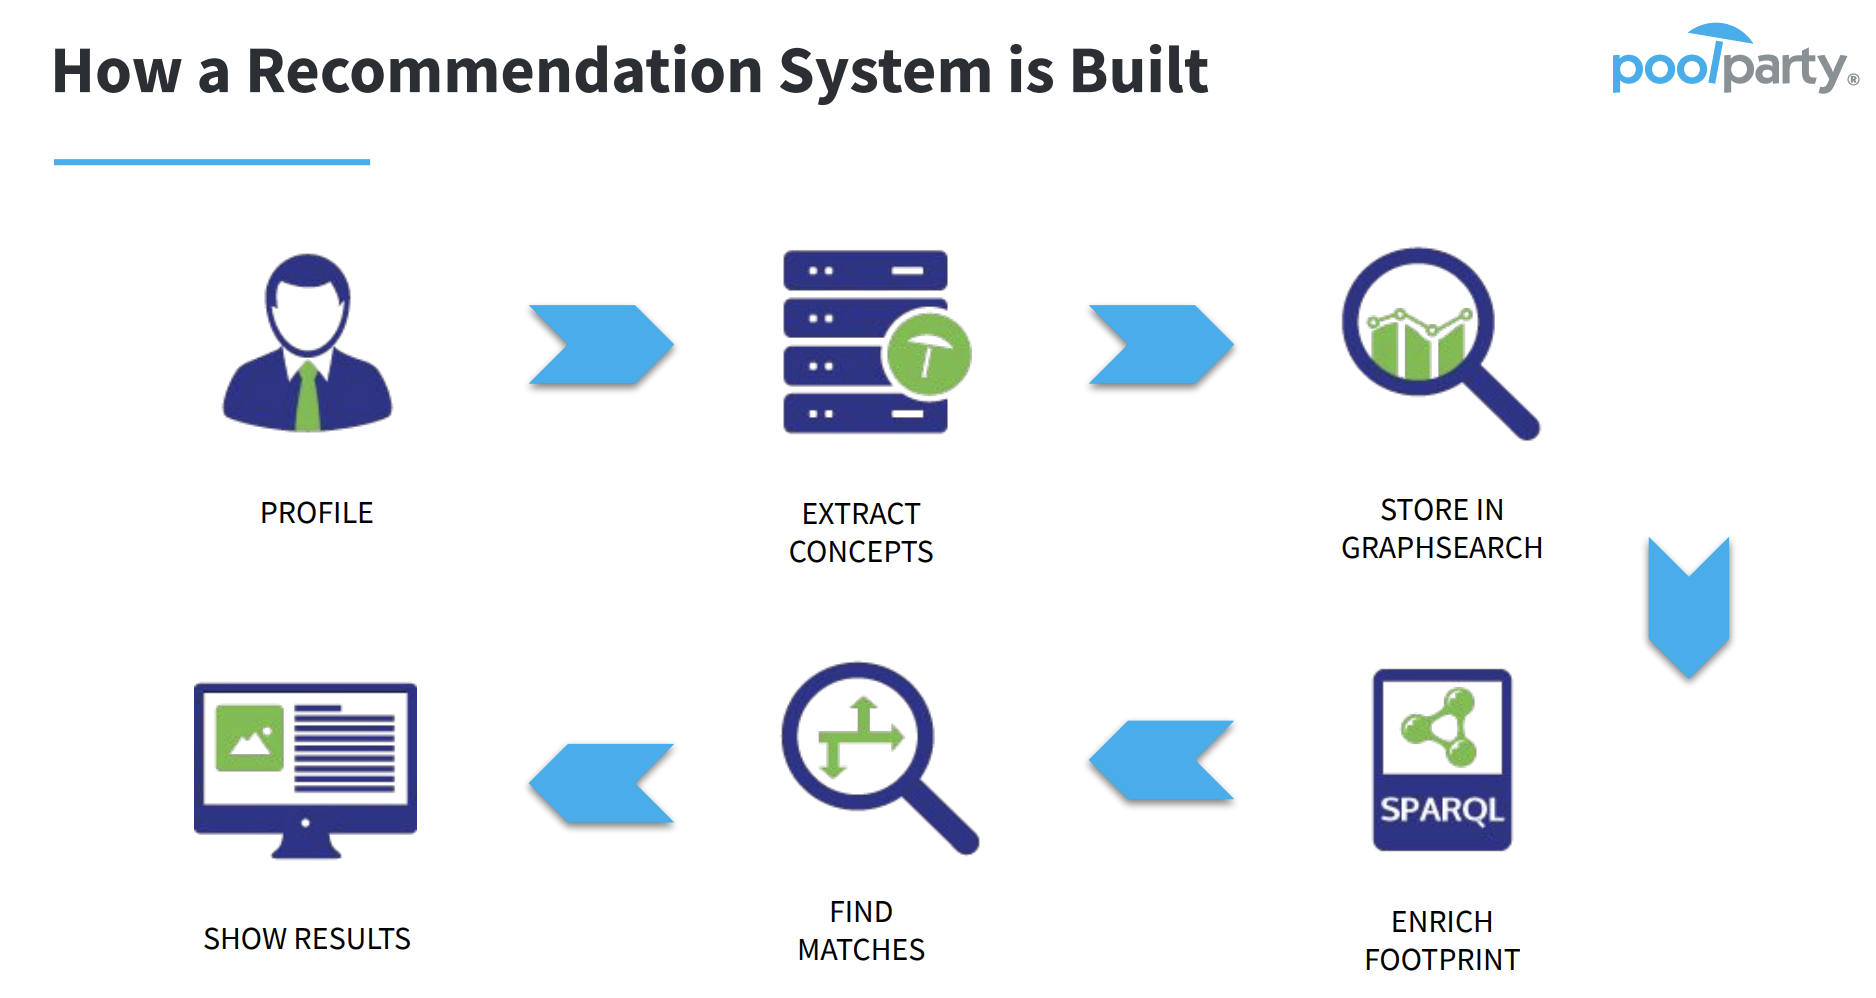 This image describes how recommendation systems can be built.